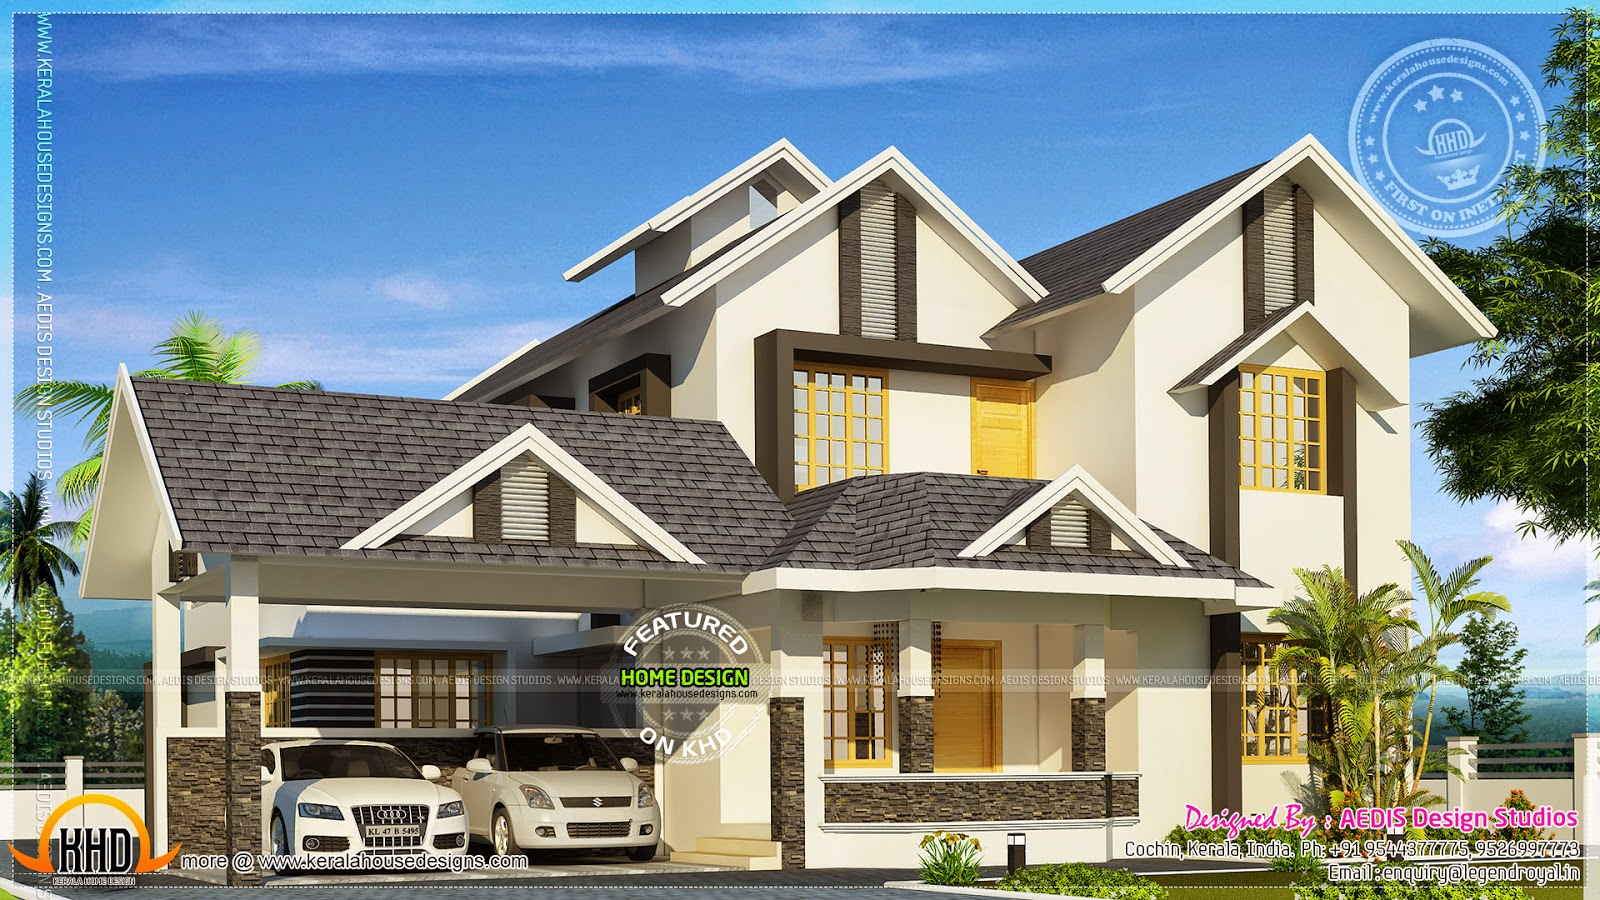 Sloping Roof Houses Ideas House Plans 12232